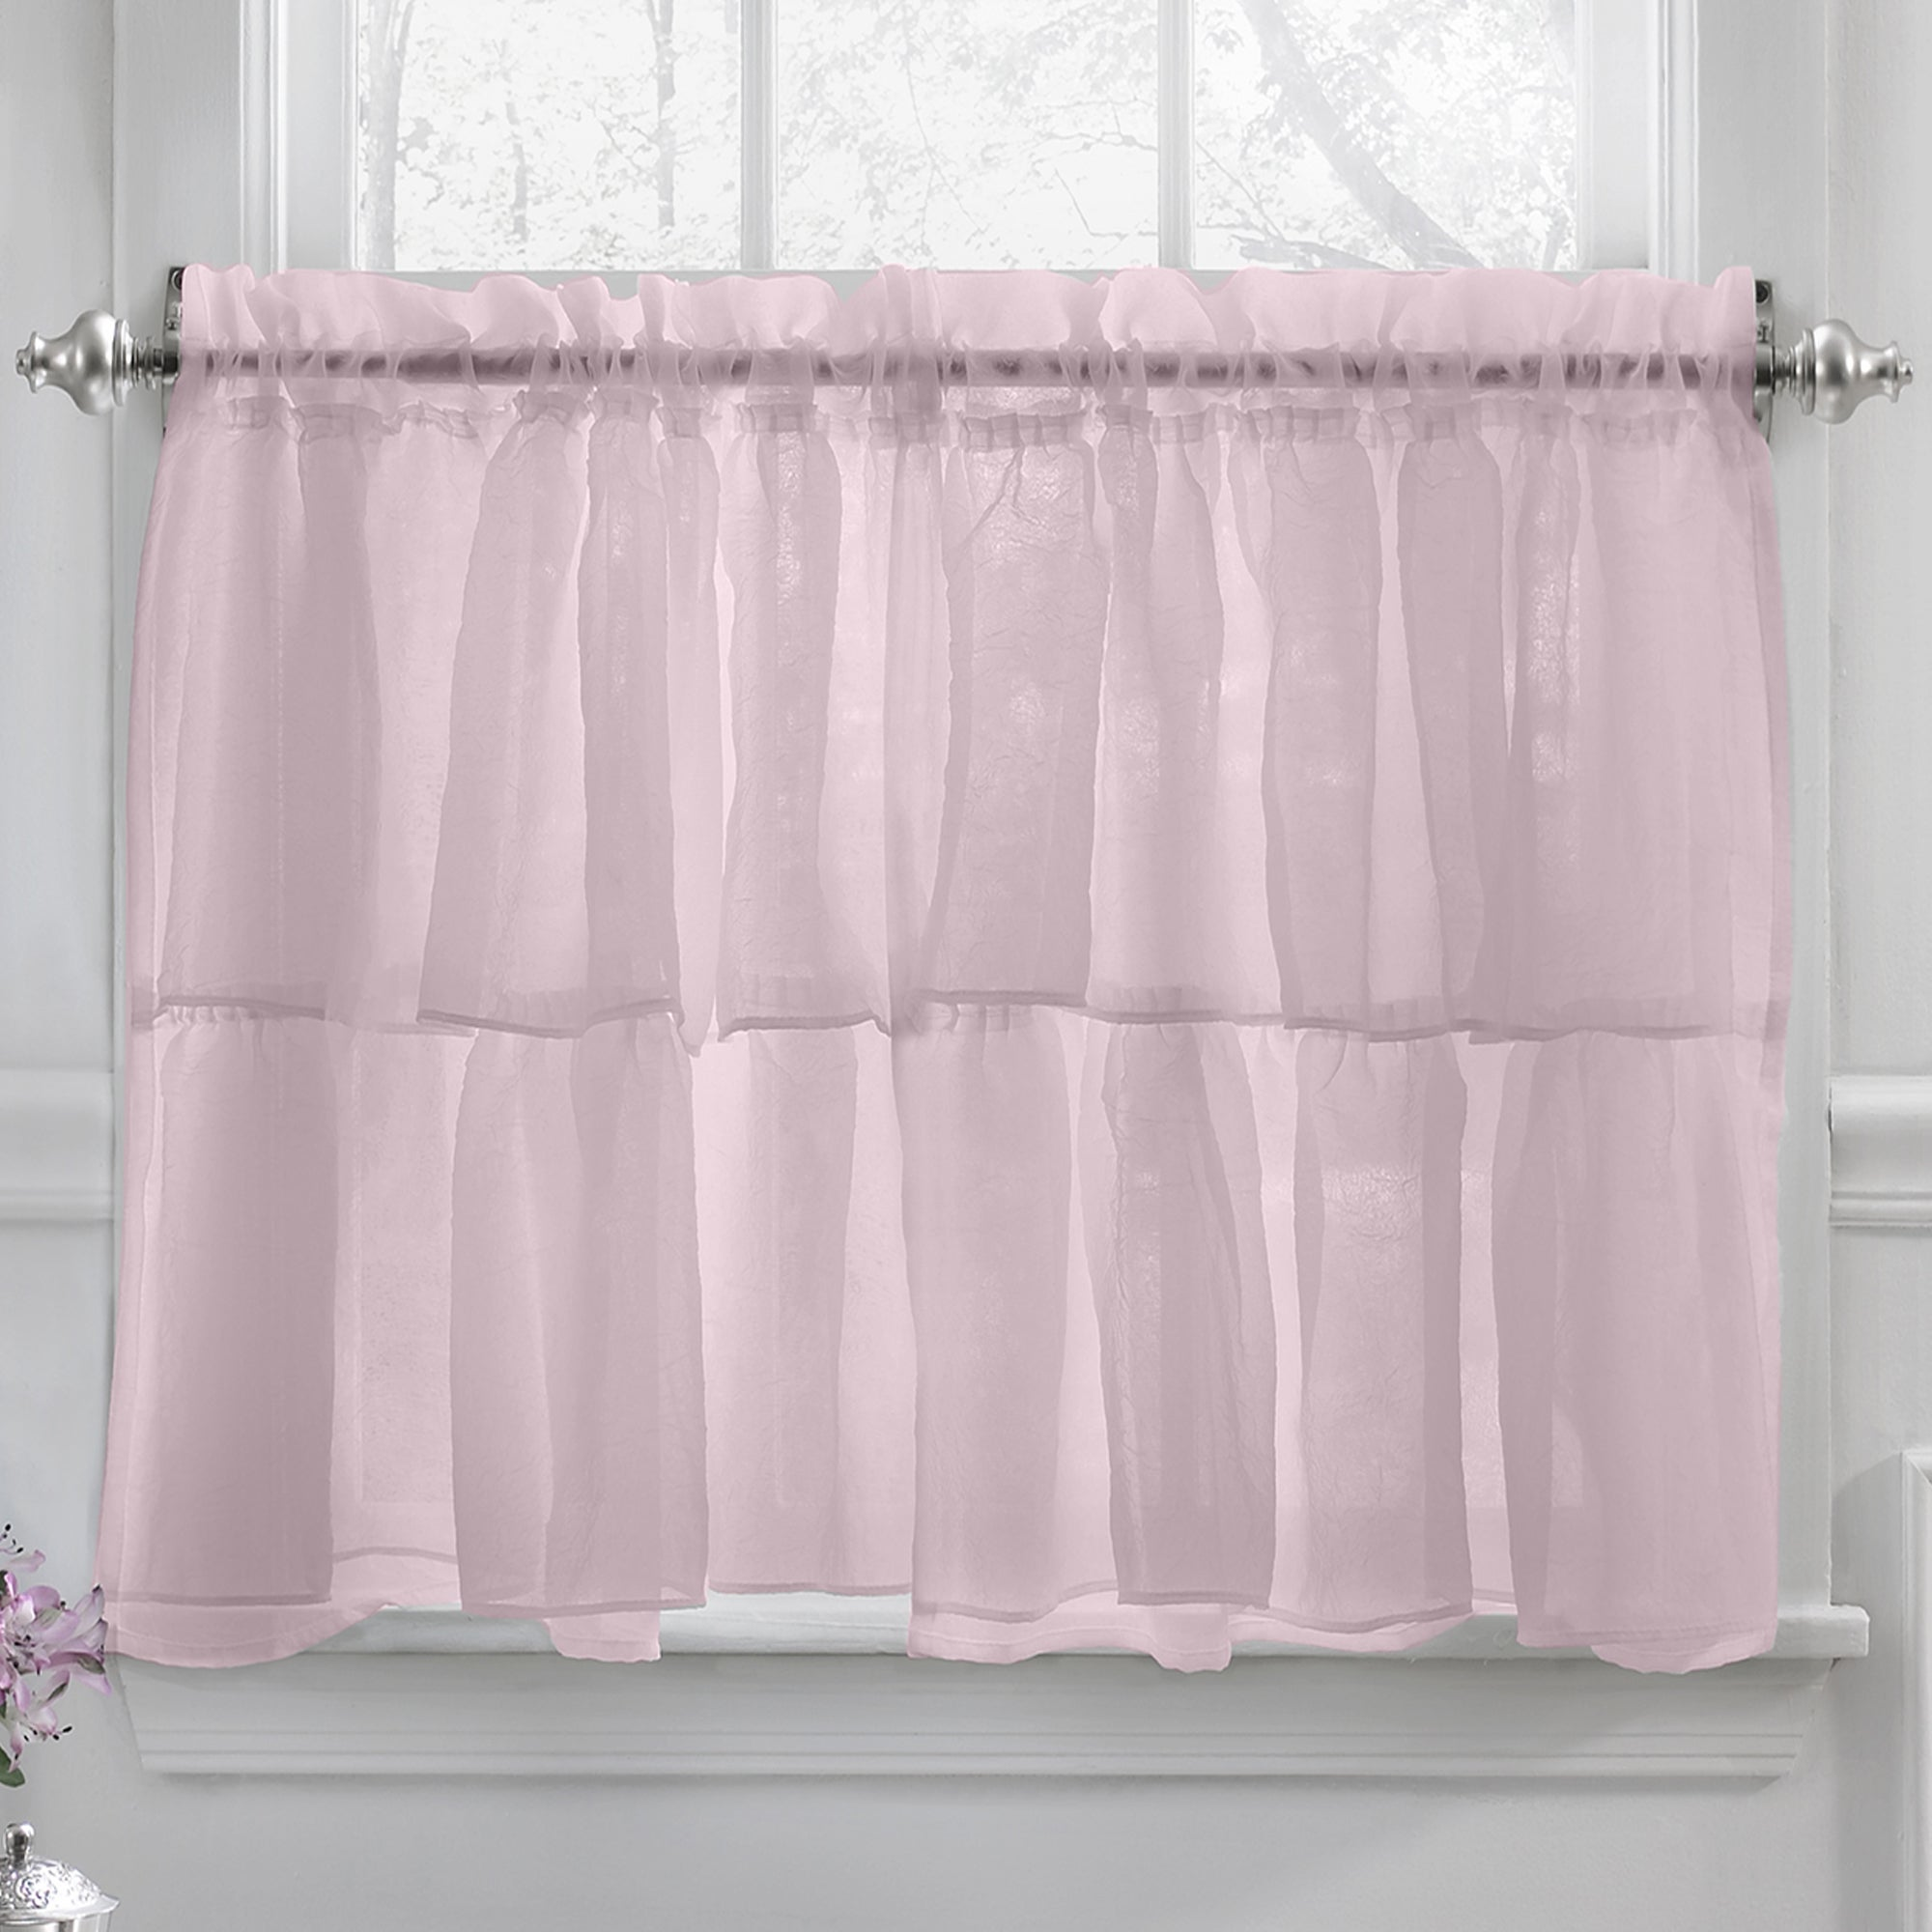 curtain valance purple kp valances pink c panels